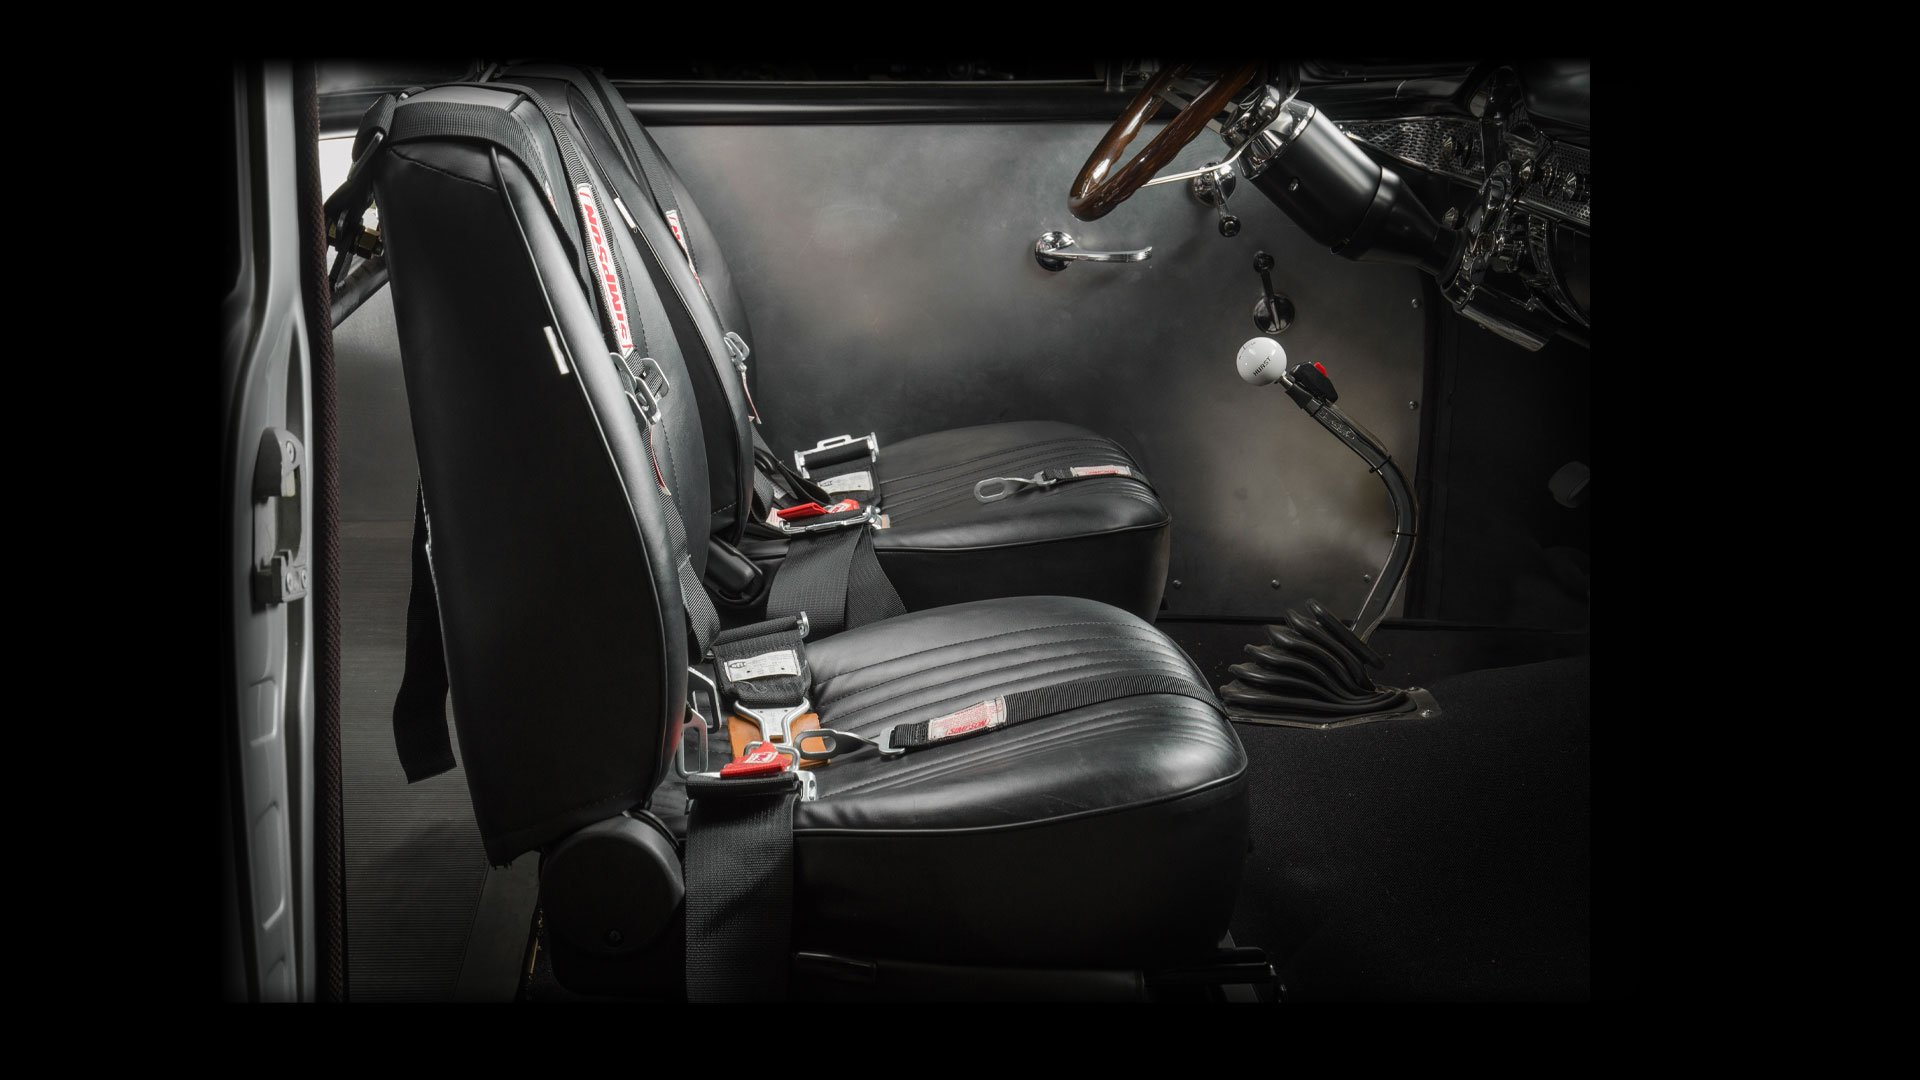 Shifters | Knobs & Accessories for Performance Transmissions